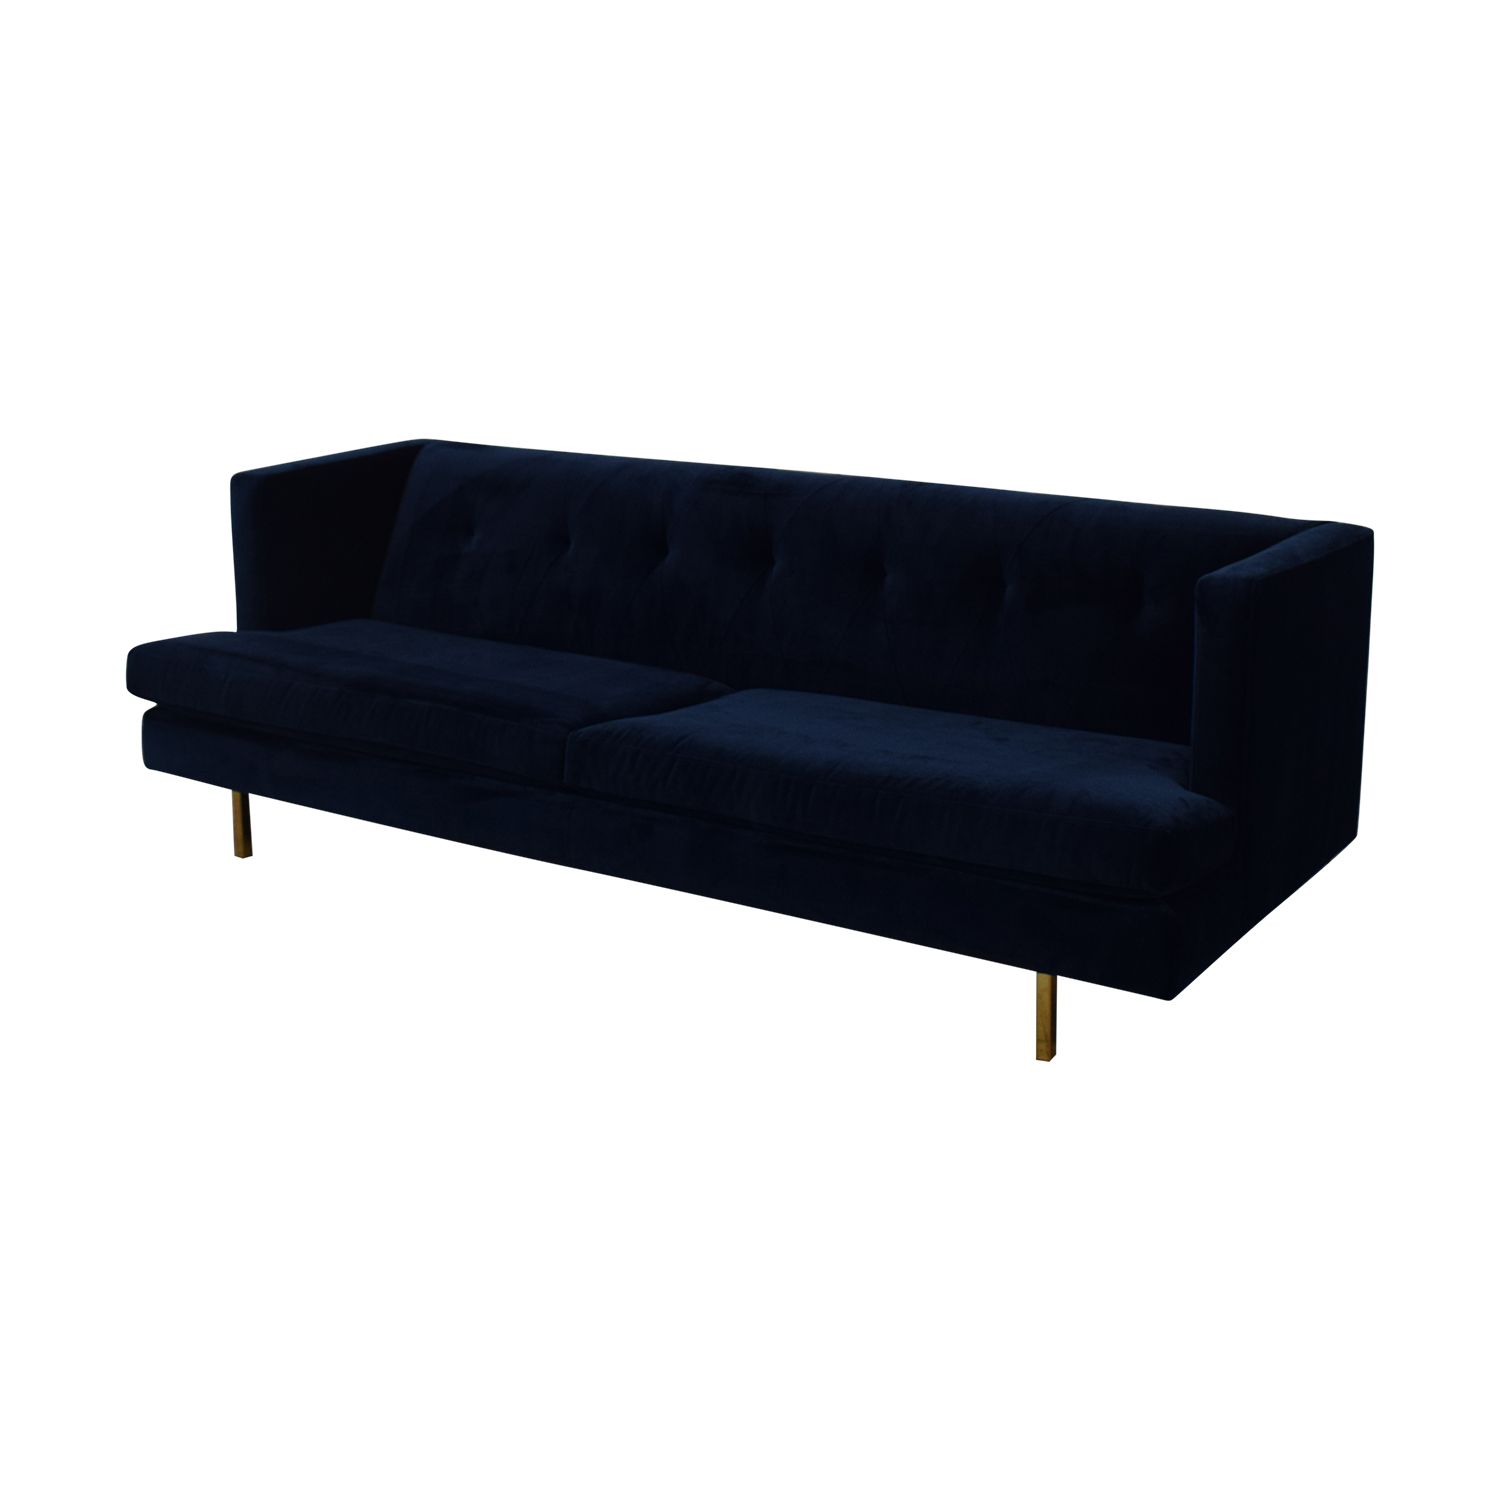 CB2 CB2 Avec Sofa with Brass Legs dimensions